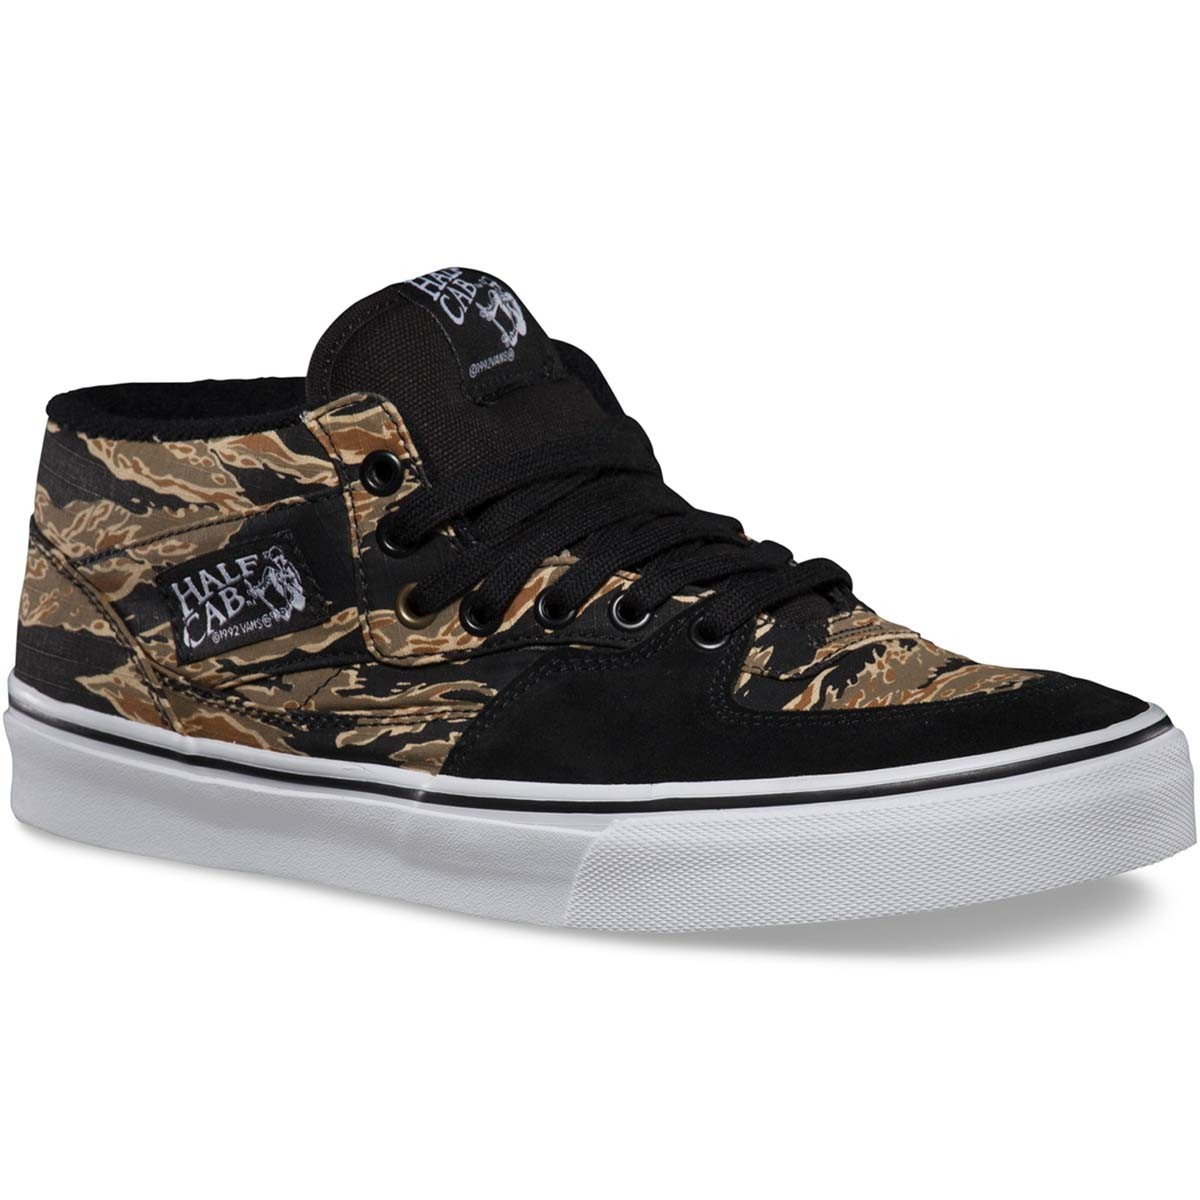 Vans Tiger Camo Half Cab Shoes - Black - 11.0